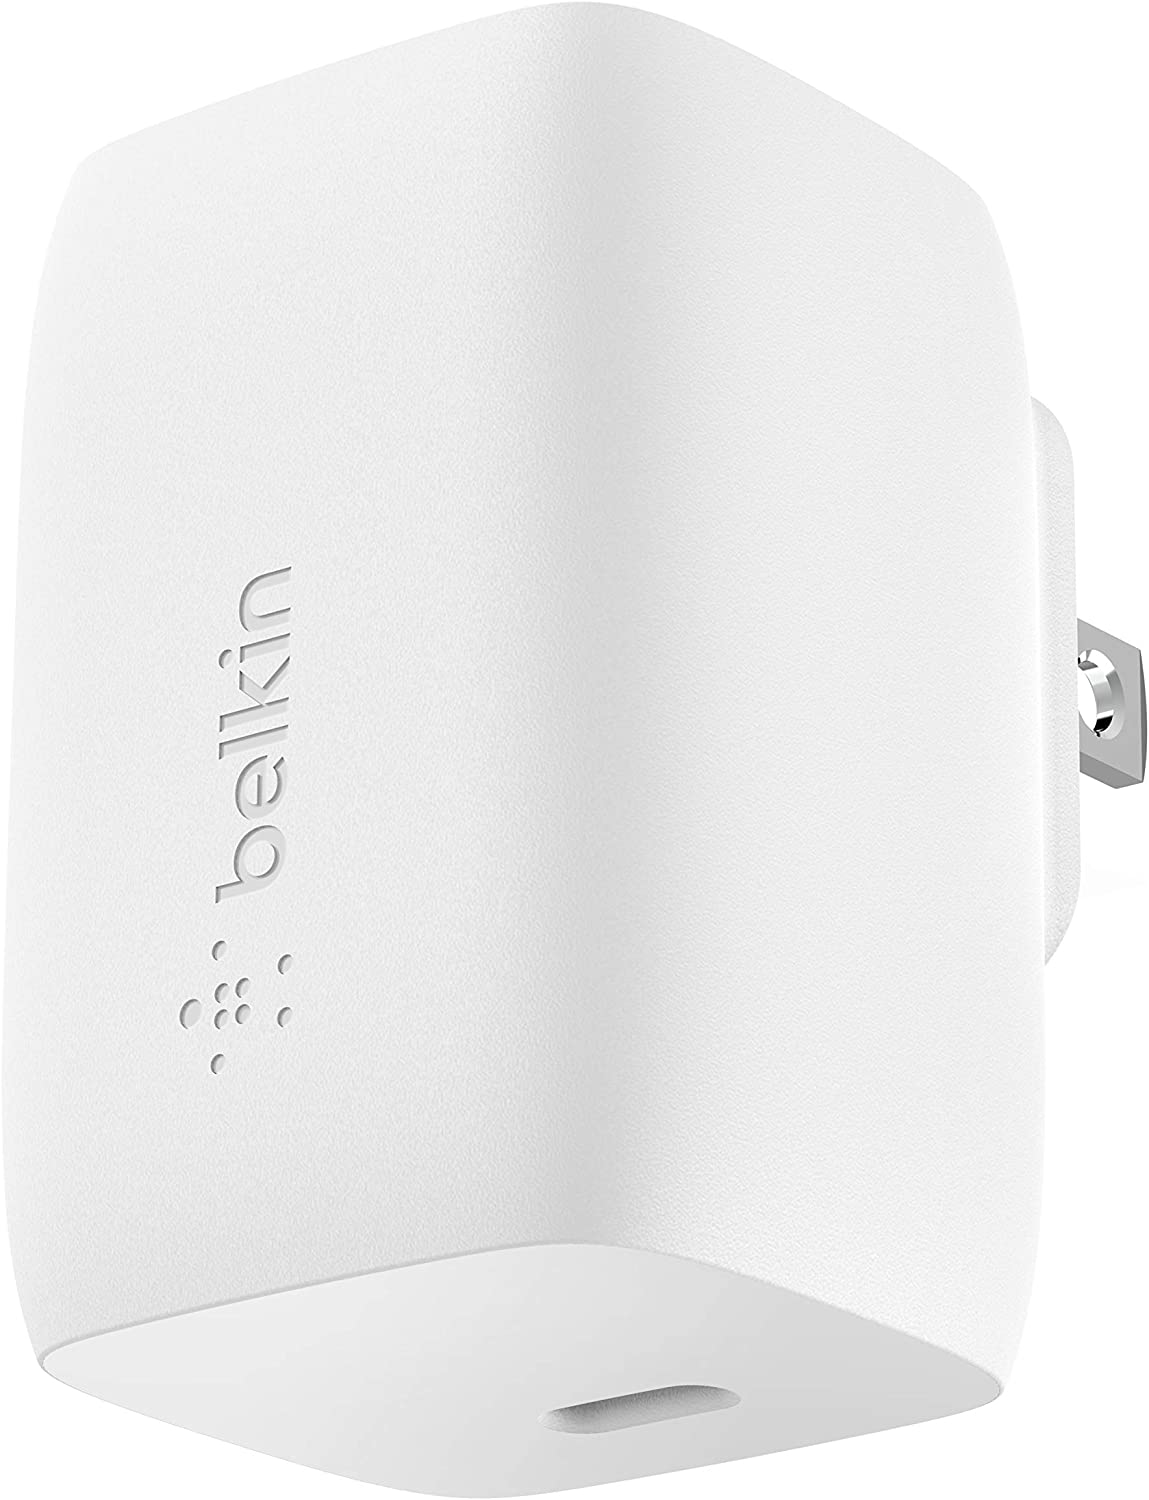 Belkin 60W GaN Charger, USB-C PD Charger (Charges MacBook Pro) USB-C Charger, USB-C MacBook Charger, MacBook Pro Charger, USB-C Fast Charger